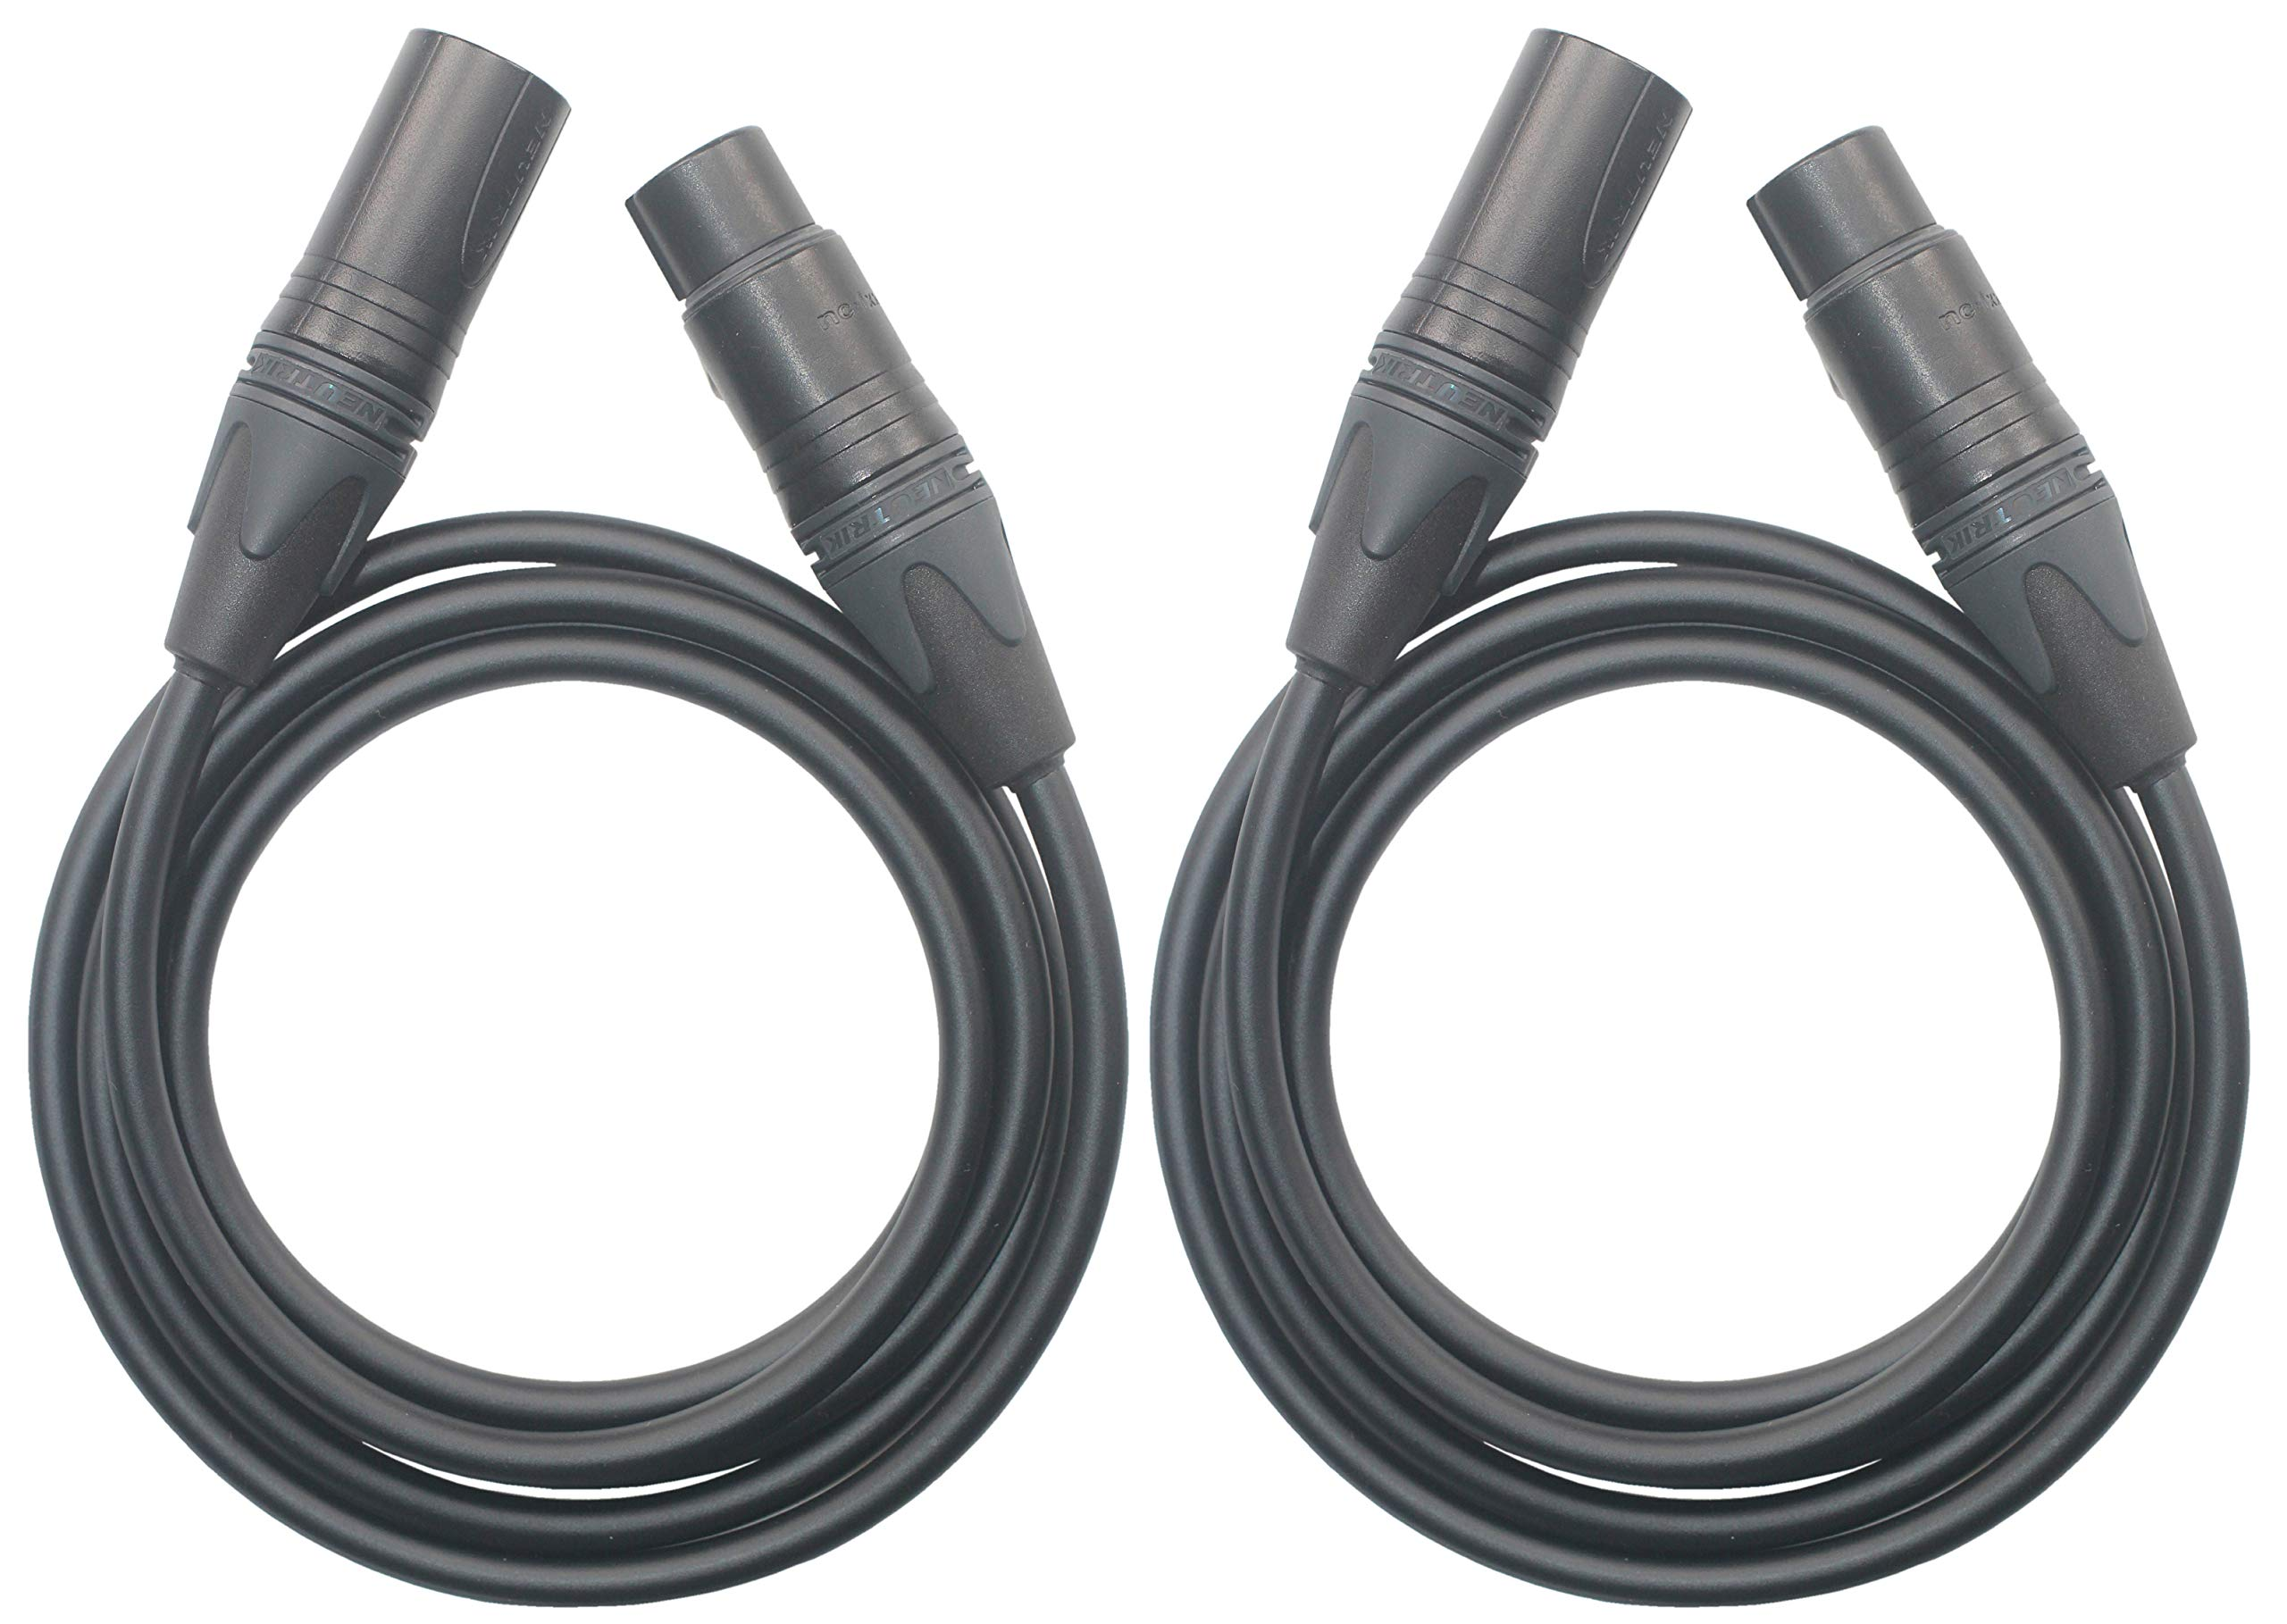 KK Cable S-AV XLR Cable 3 Pin 2xlr Male to Female Microphone Audio Cable, Balanced XLR Audio Cable. S-AV (4.9ft (1.5M))